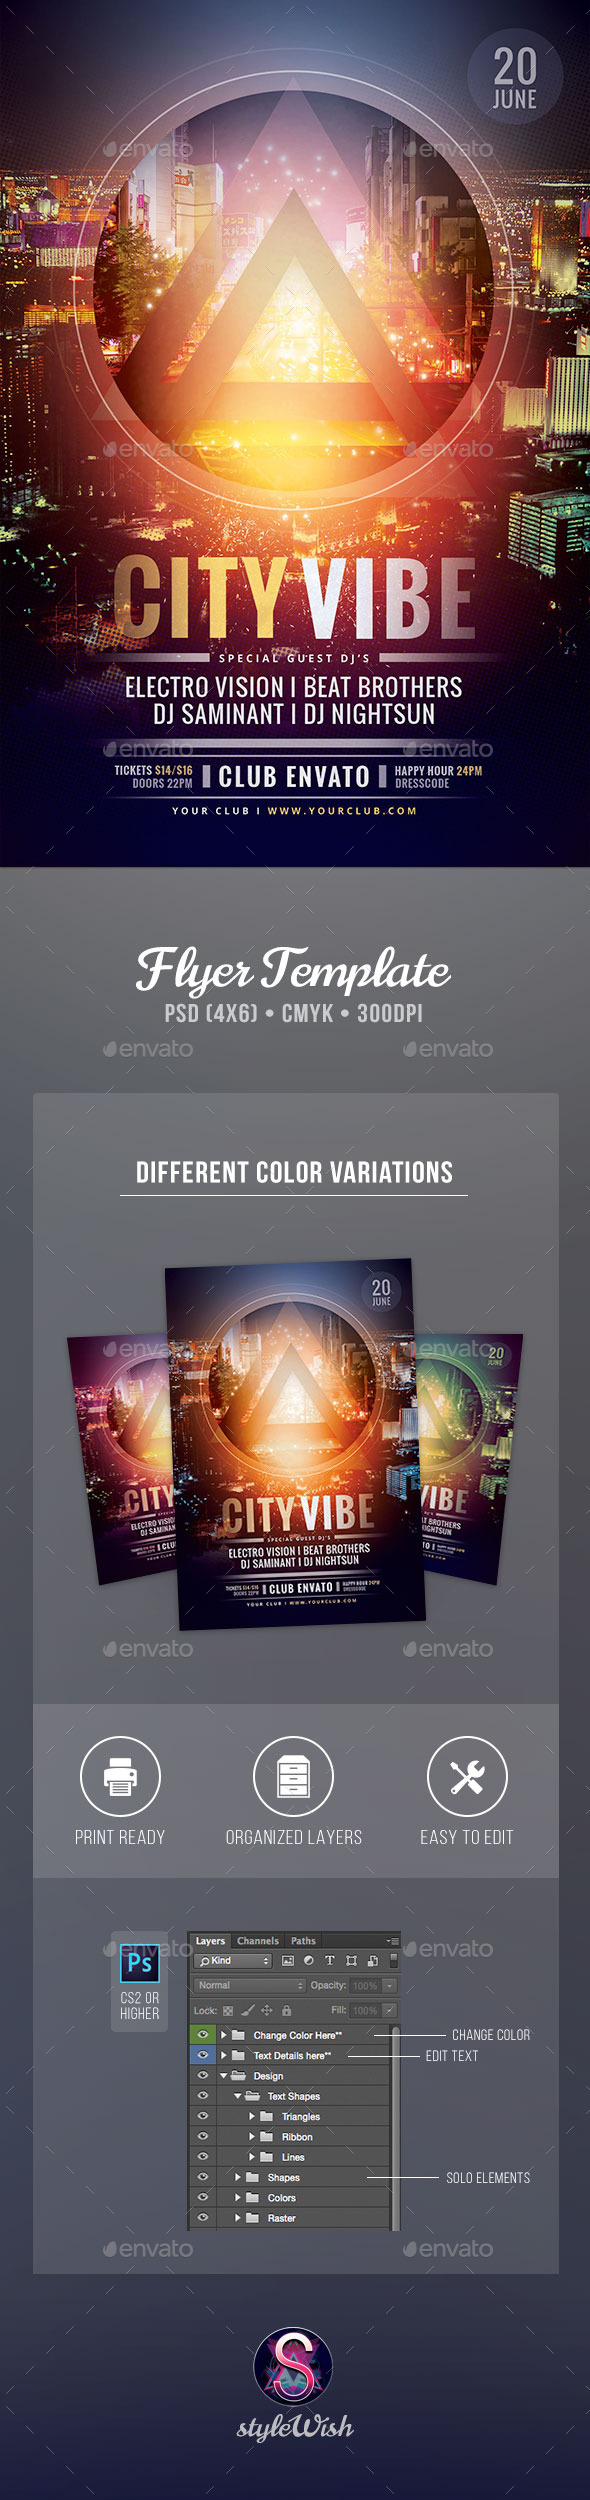 GraphicRiver City Vibe Flyer 11320067